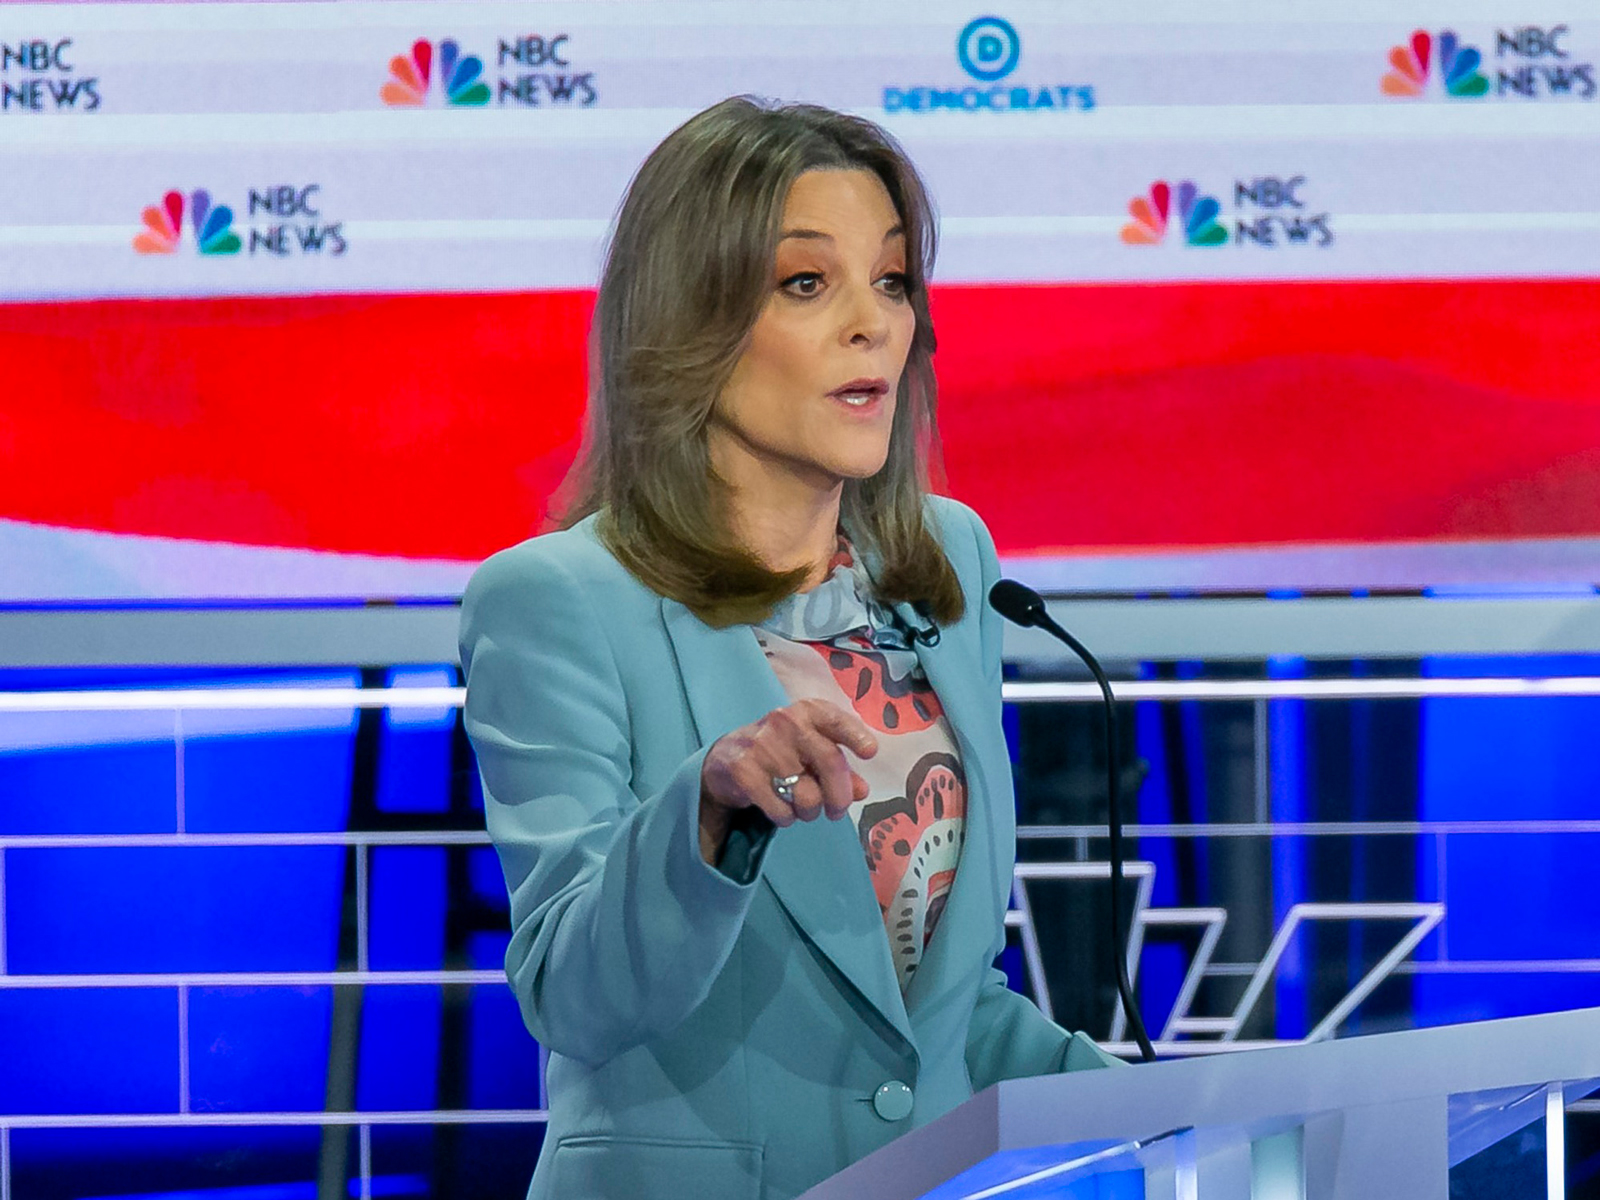 Marianne Williamson Probably Won't Be President, But She's the Only Candidate Who Brought Up Food Policy